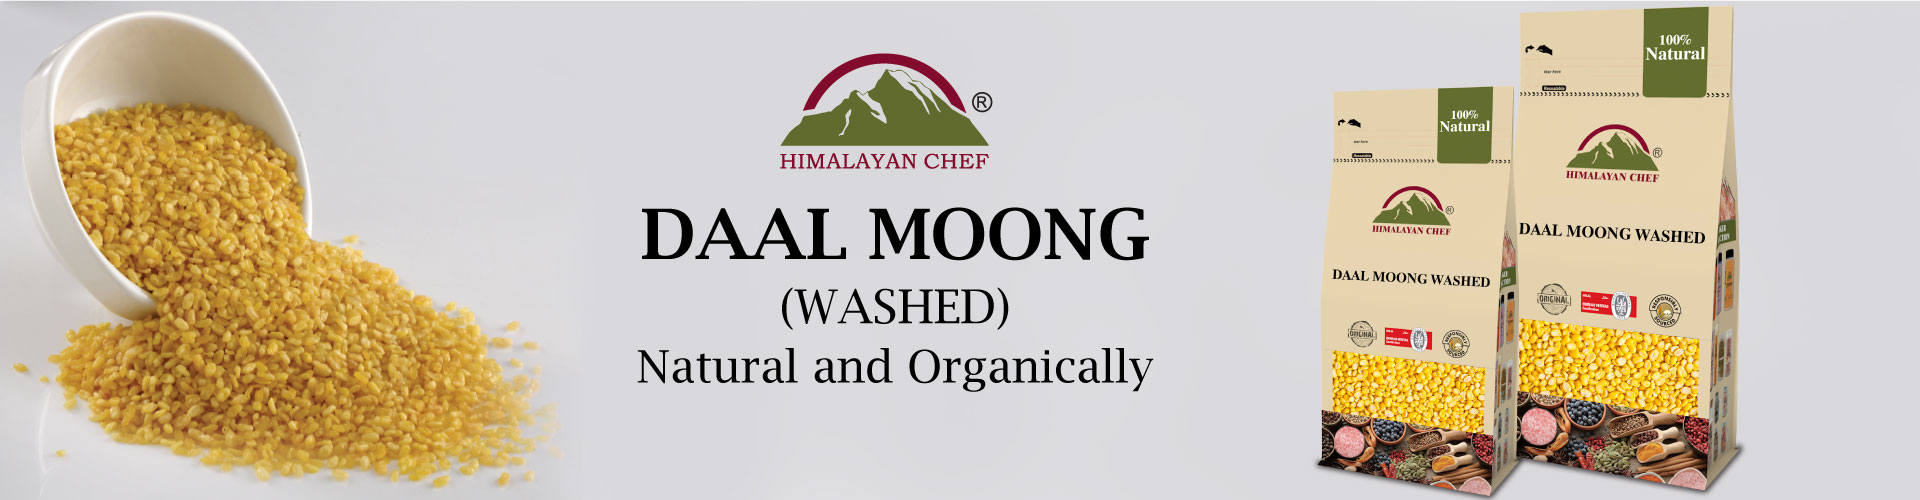 Daal Mong Washed